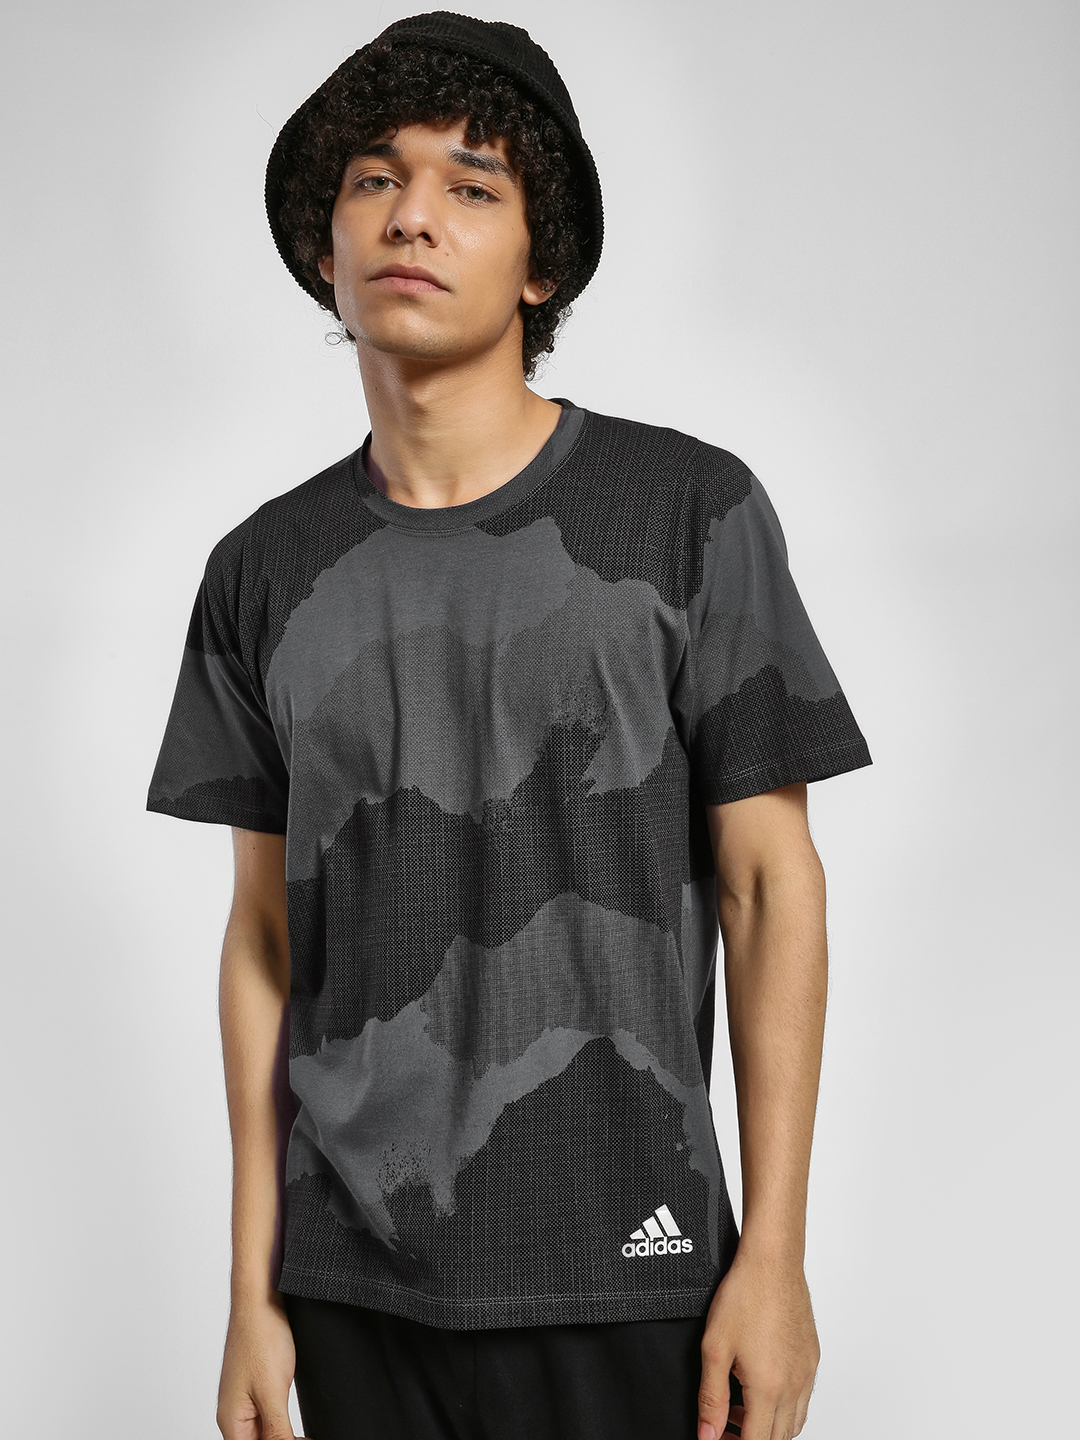 Adidas Black Large Camo Print T-Shirt 1